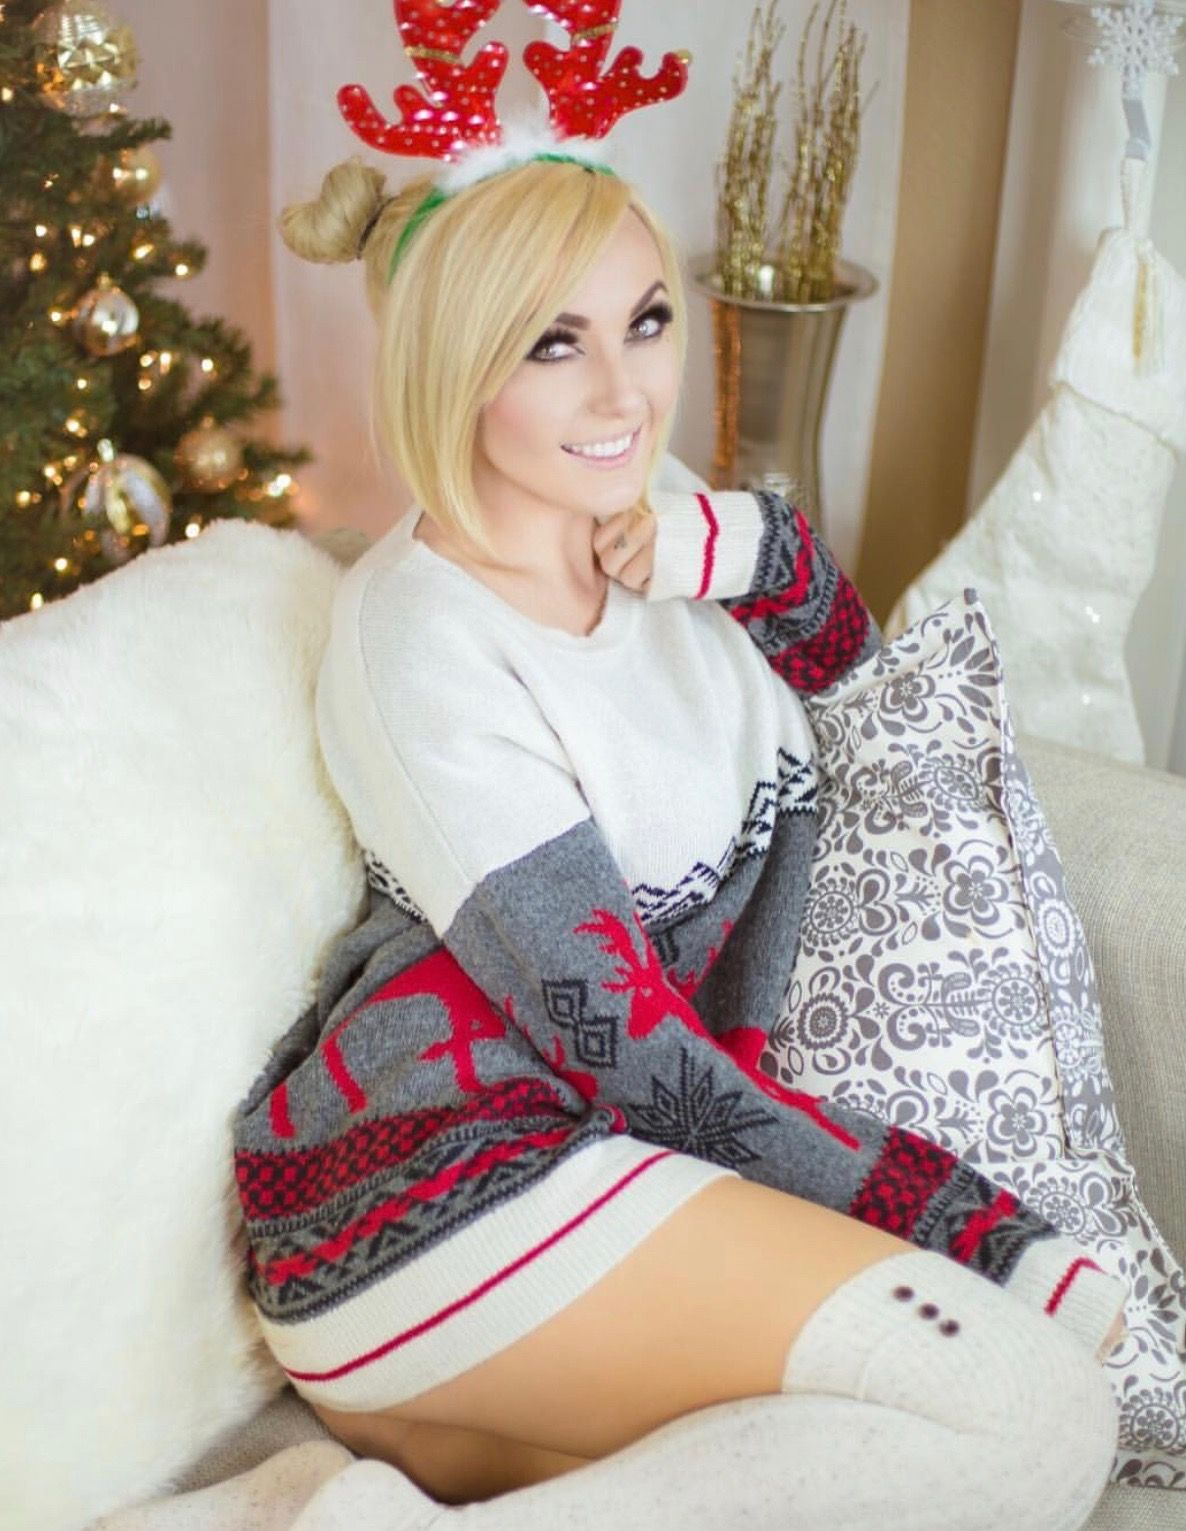 Pin by J Lee on Christmas | Pinterest | Jessica nigri, Cozy sweaters ...